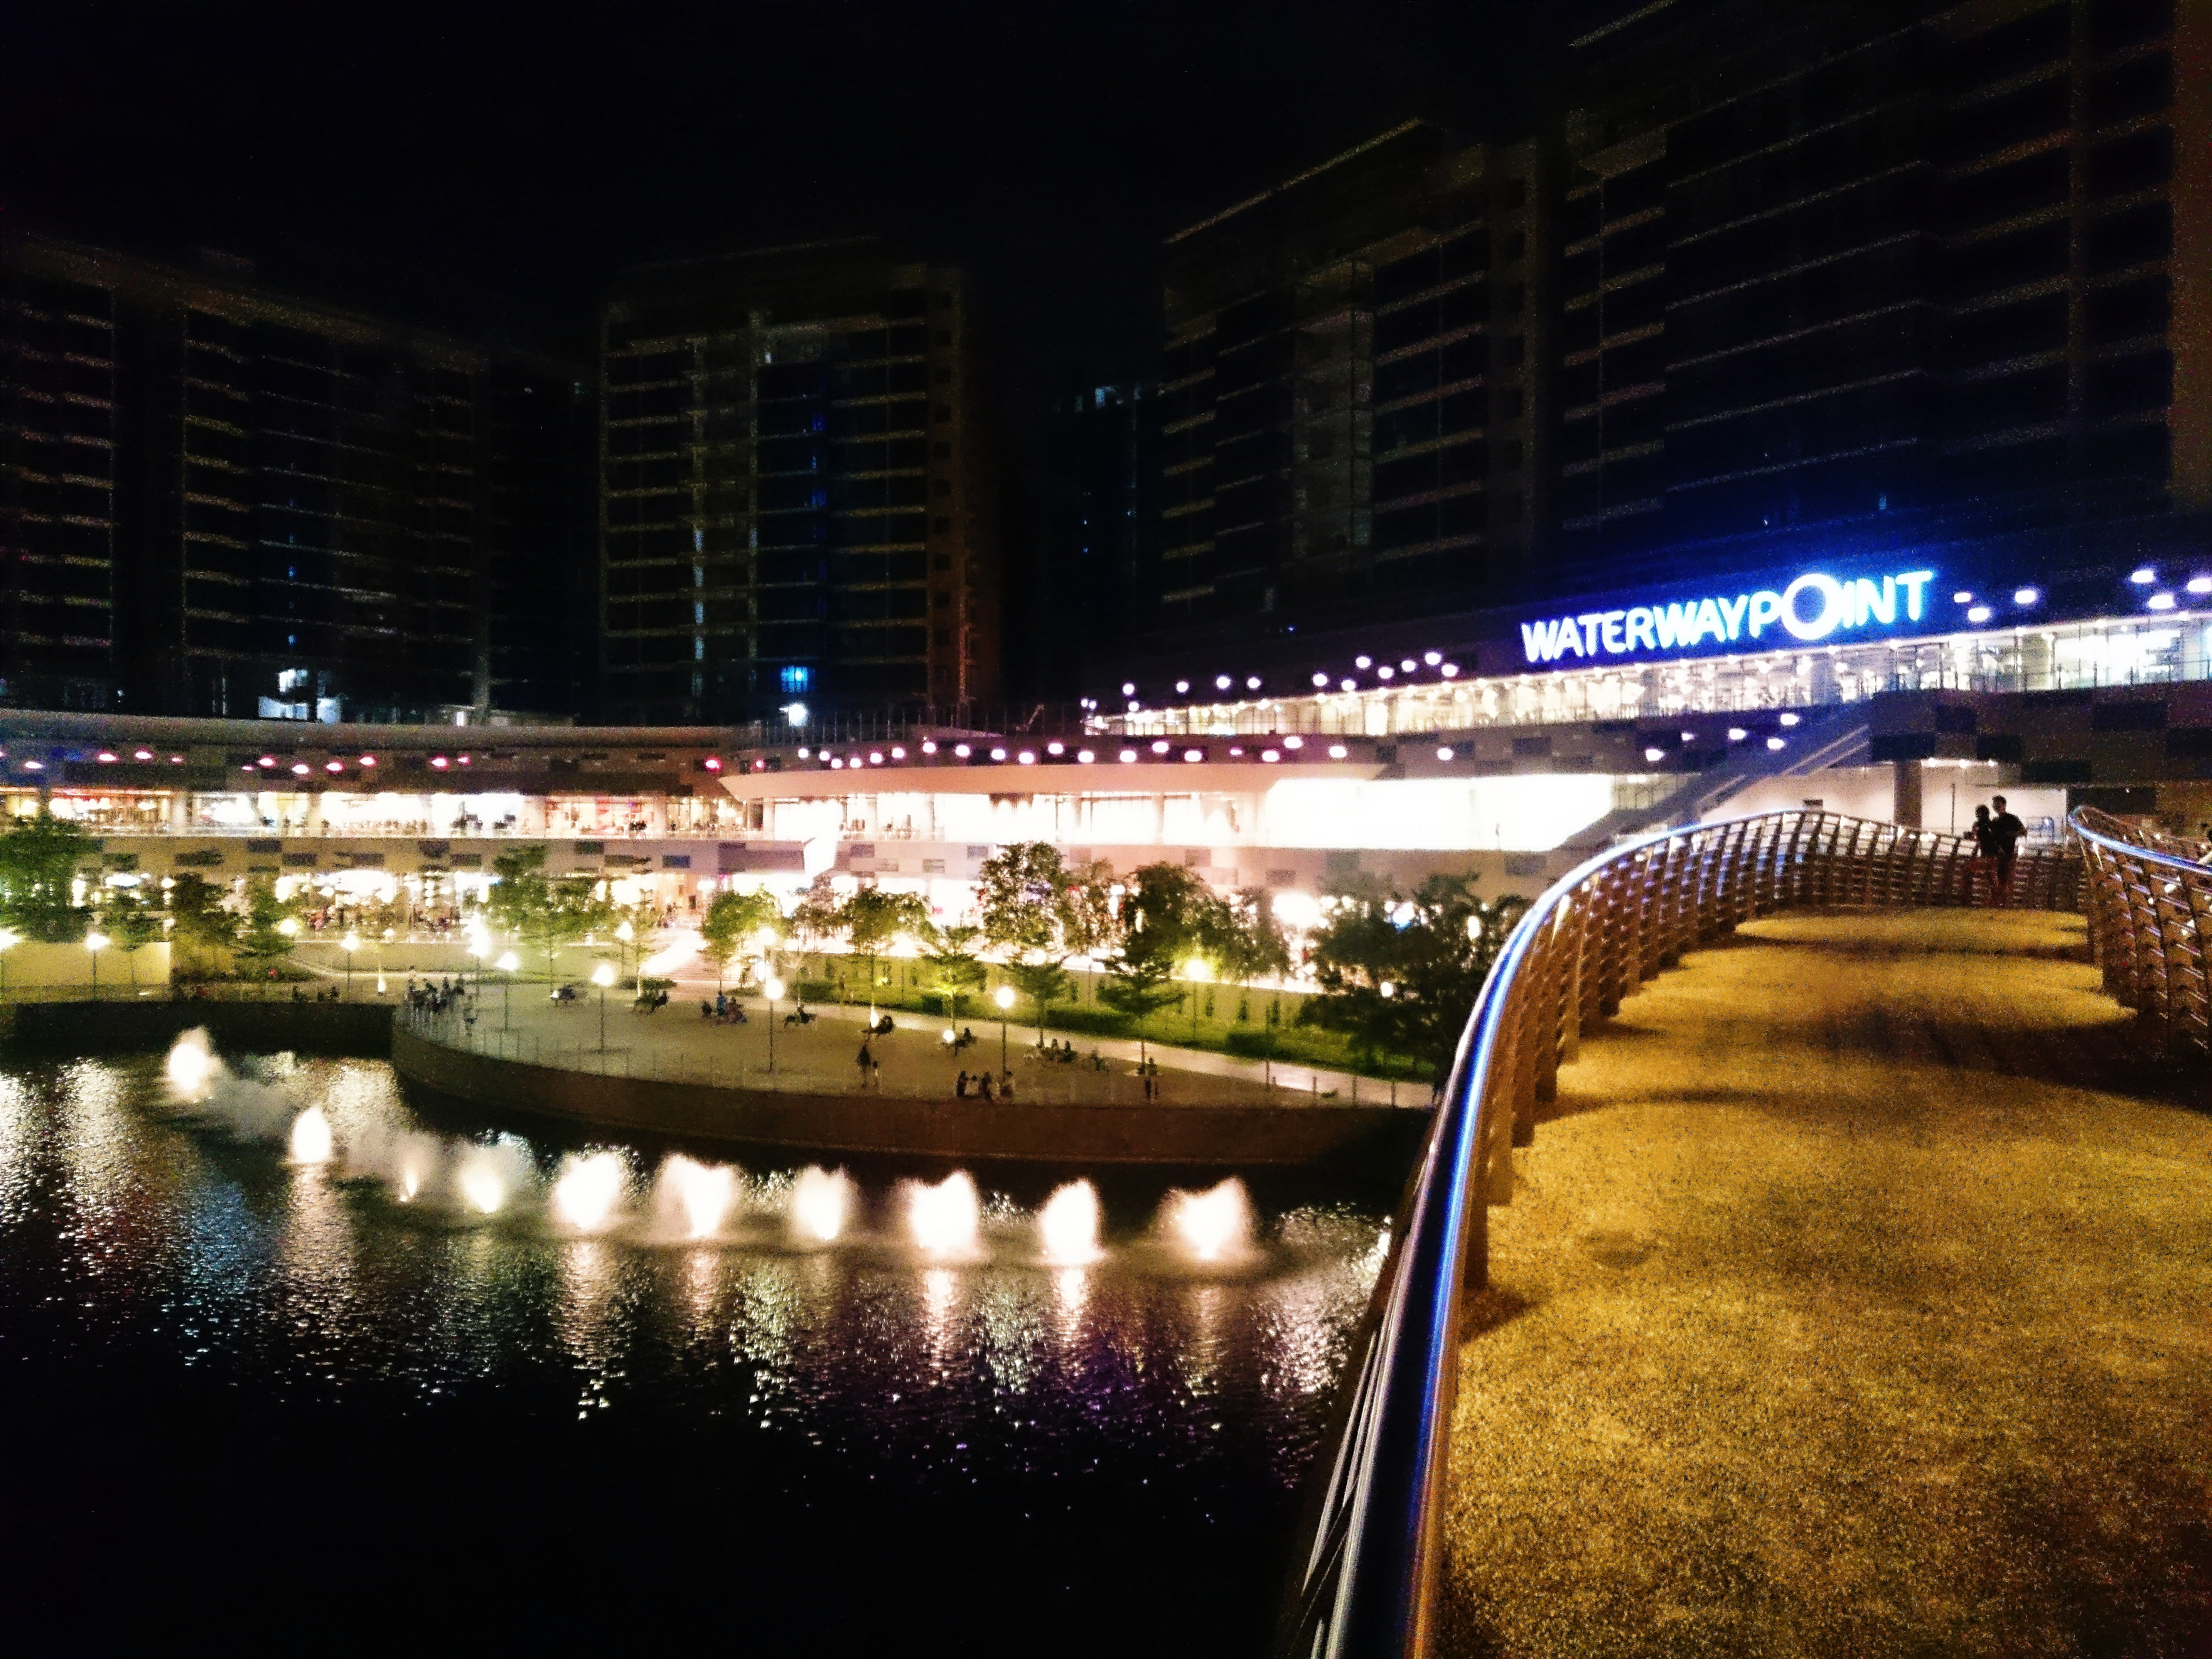 Taken at Waterway Point, with Xperia Z3